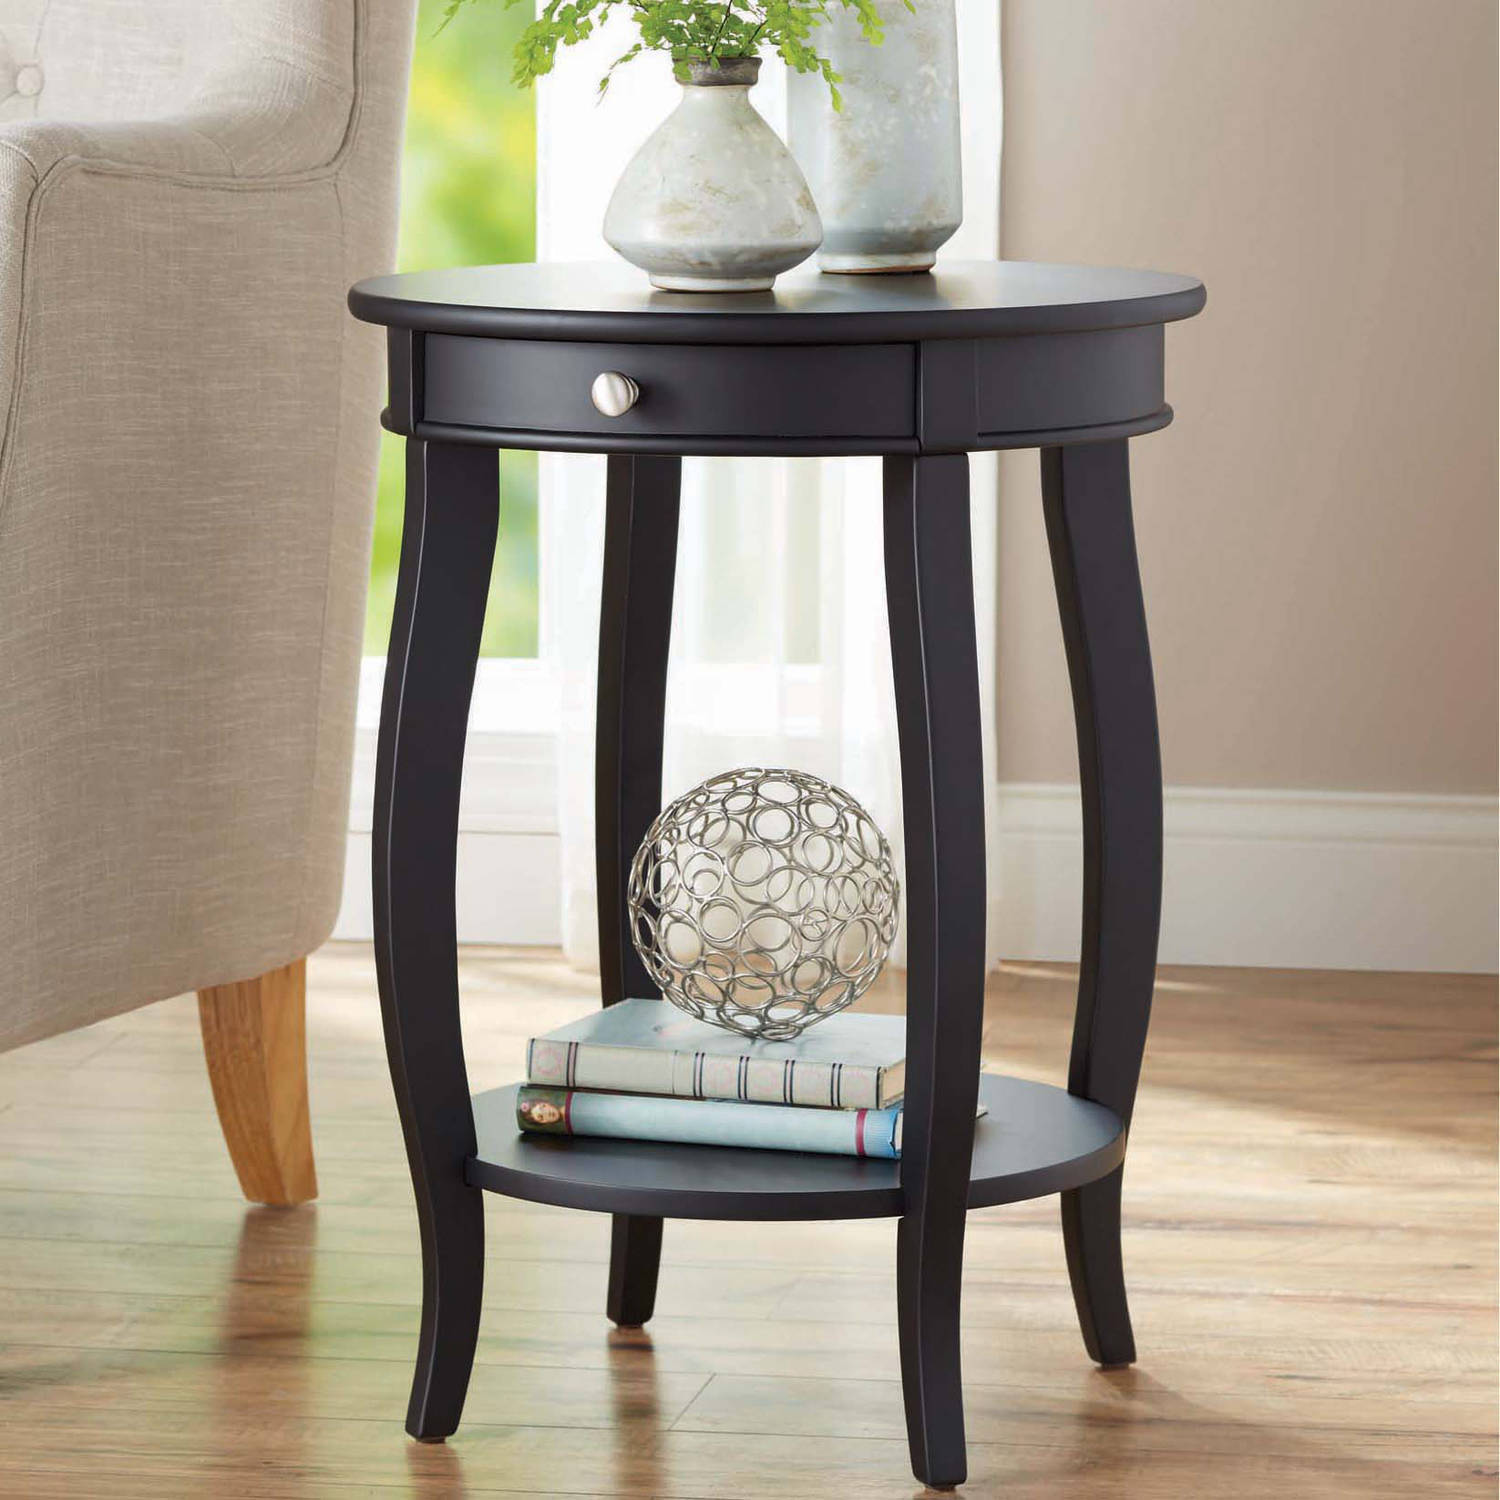 better homes gardens round accent table with drawer multiple end tables colors pedestal lamp contemporary timber furniture brisbane carpet transition piece bedside dresser rustic